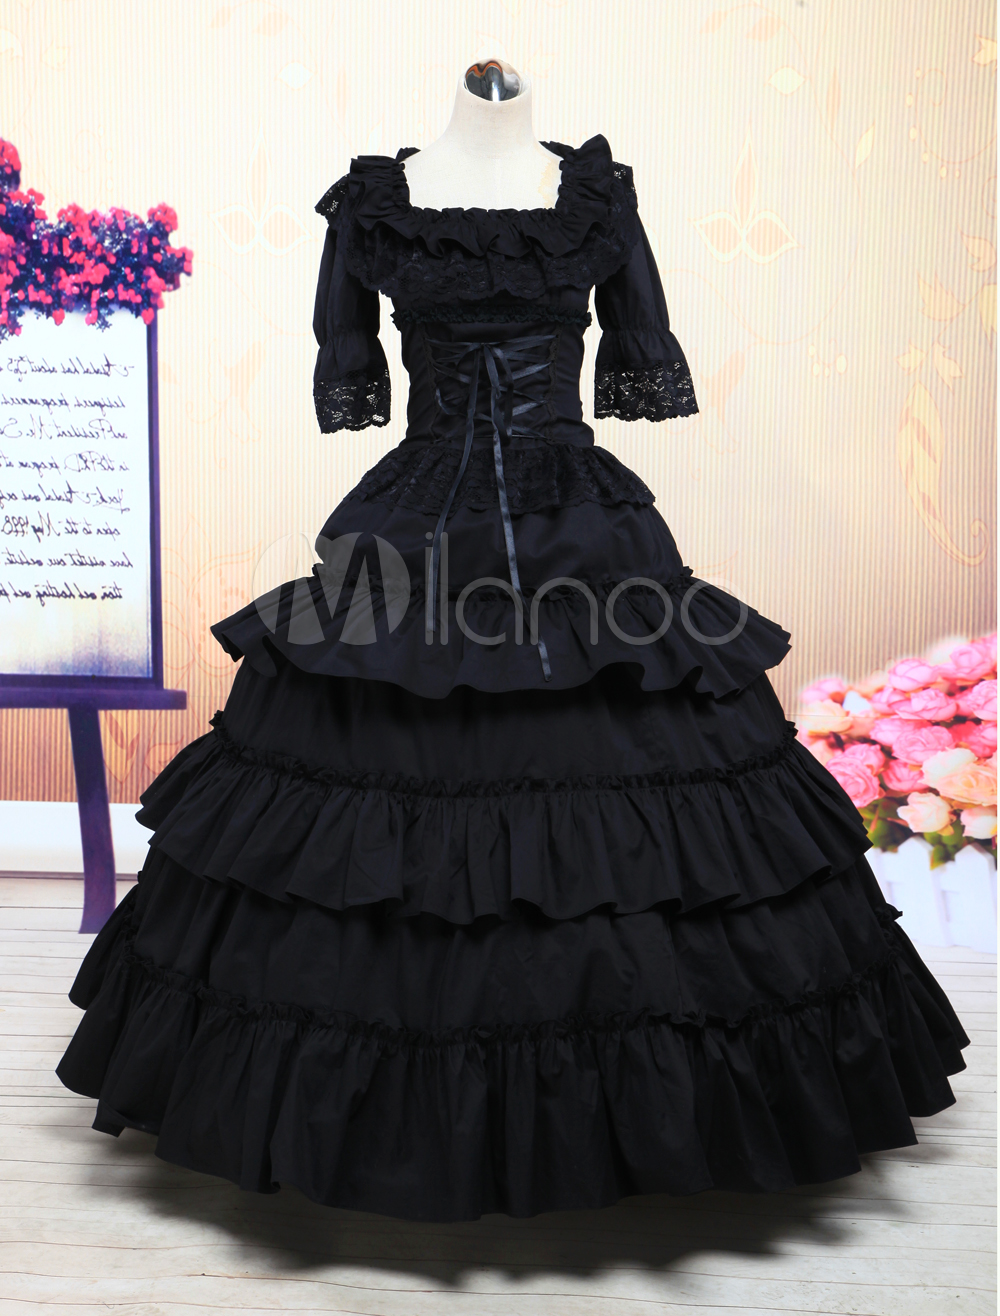 Fashion week Victorian black dress photo for lady